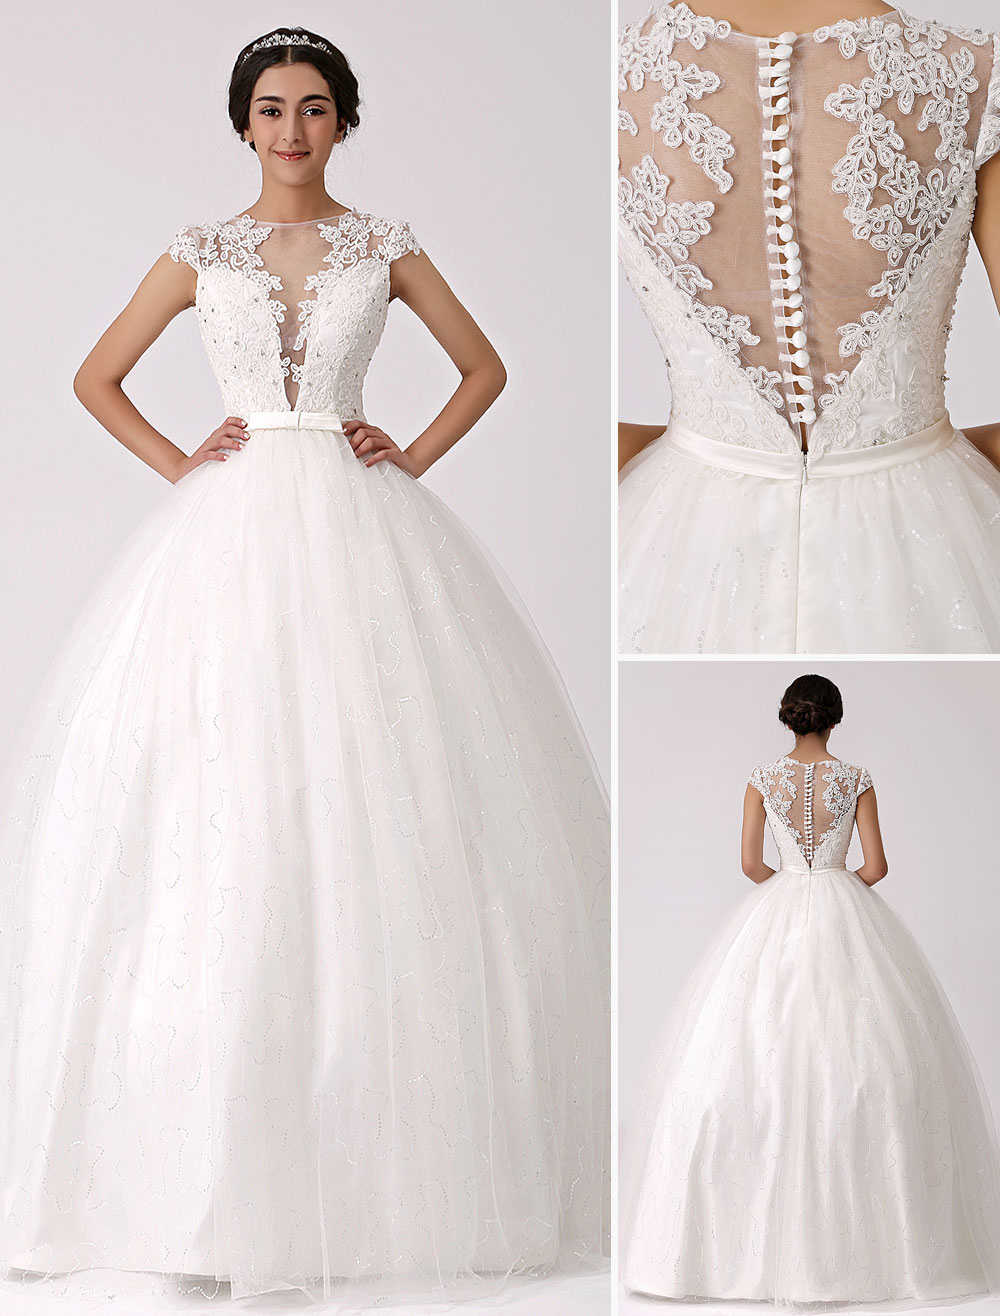 Illusion Plunge Neck Princess Wedding Gown with Sheer Lace Back ...